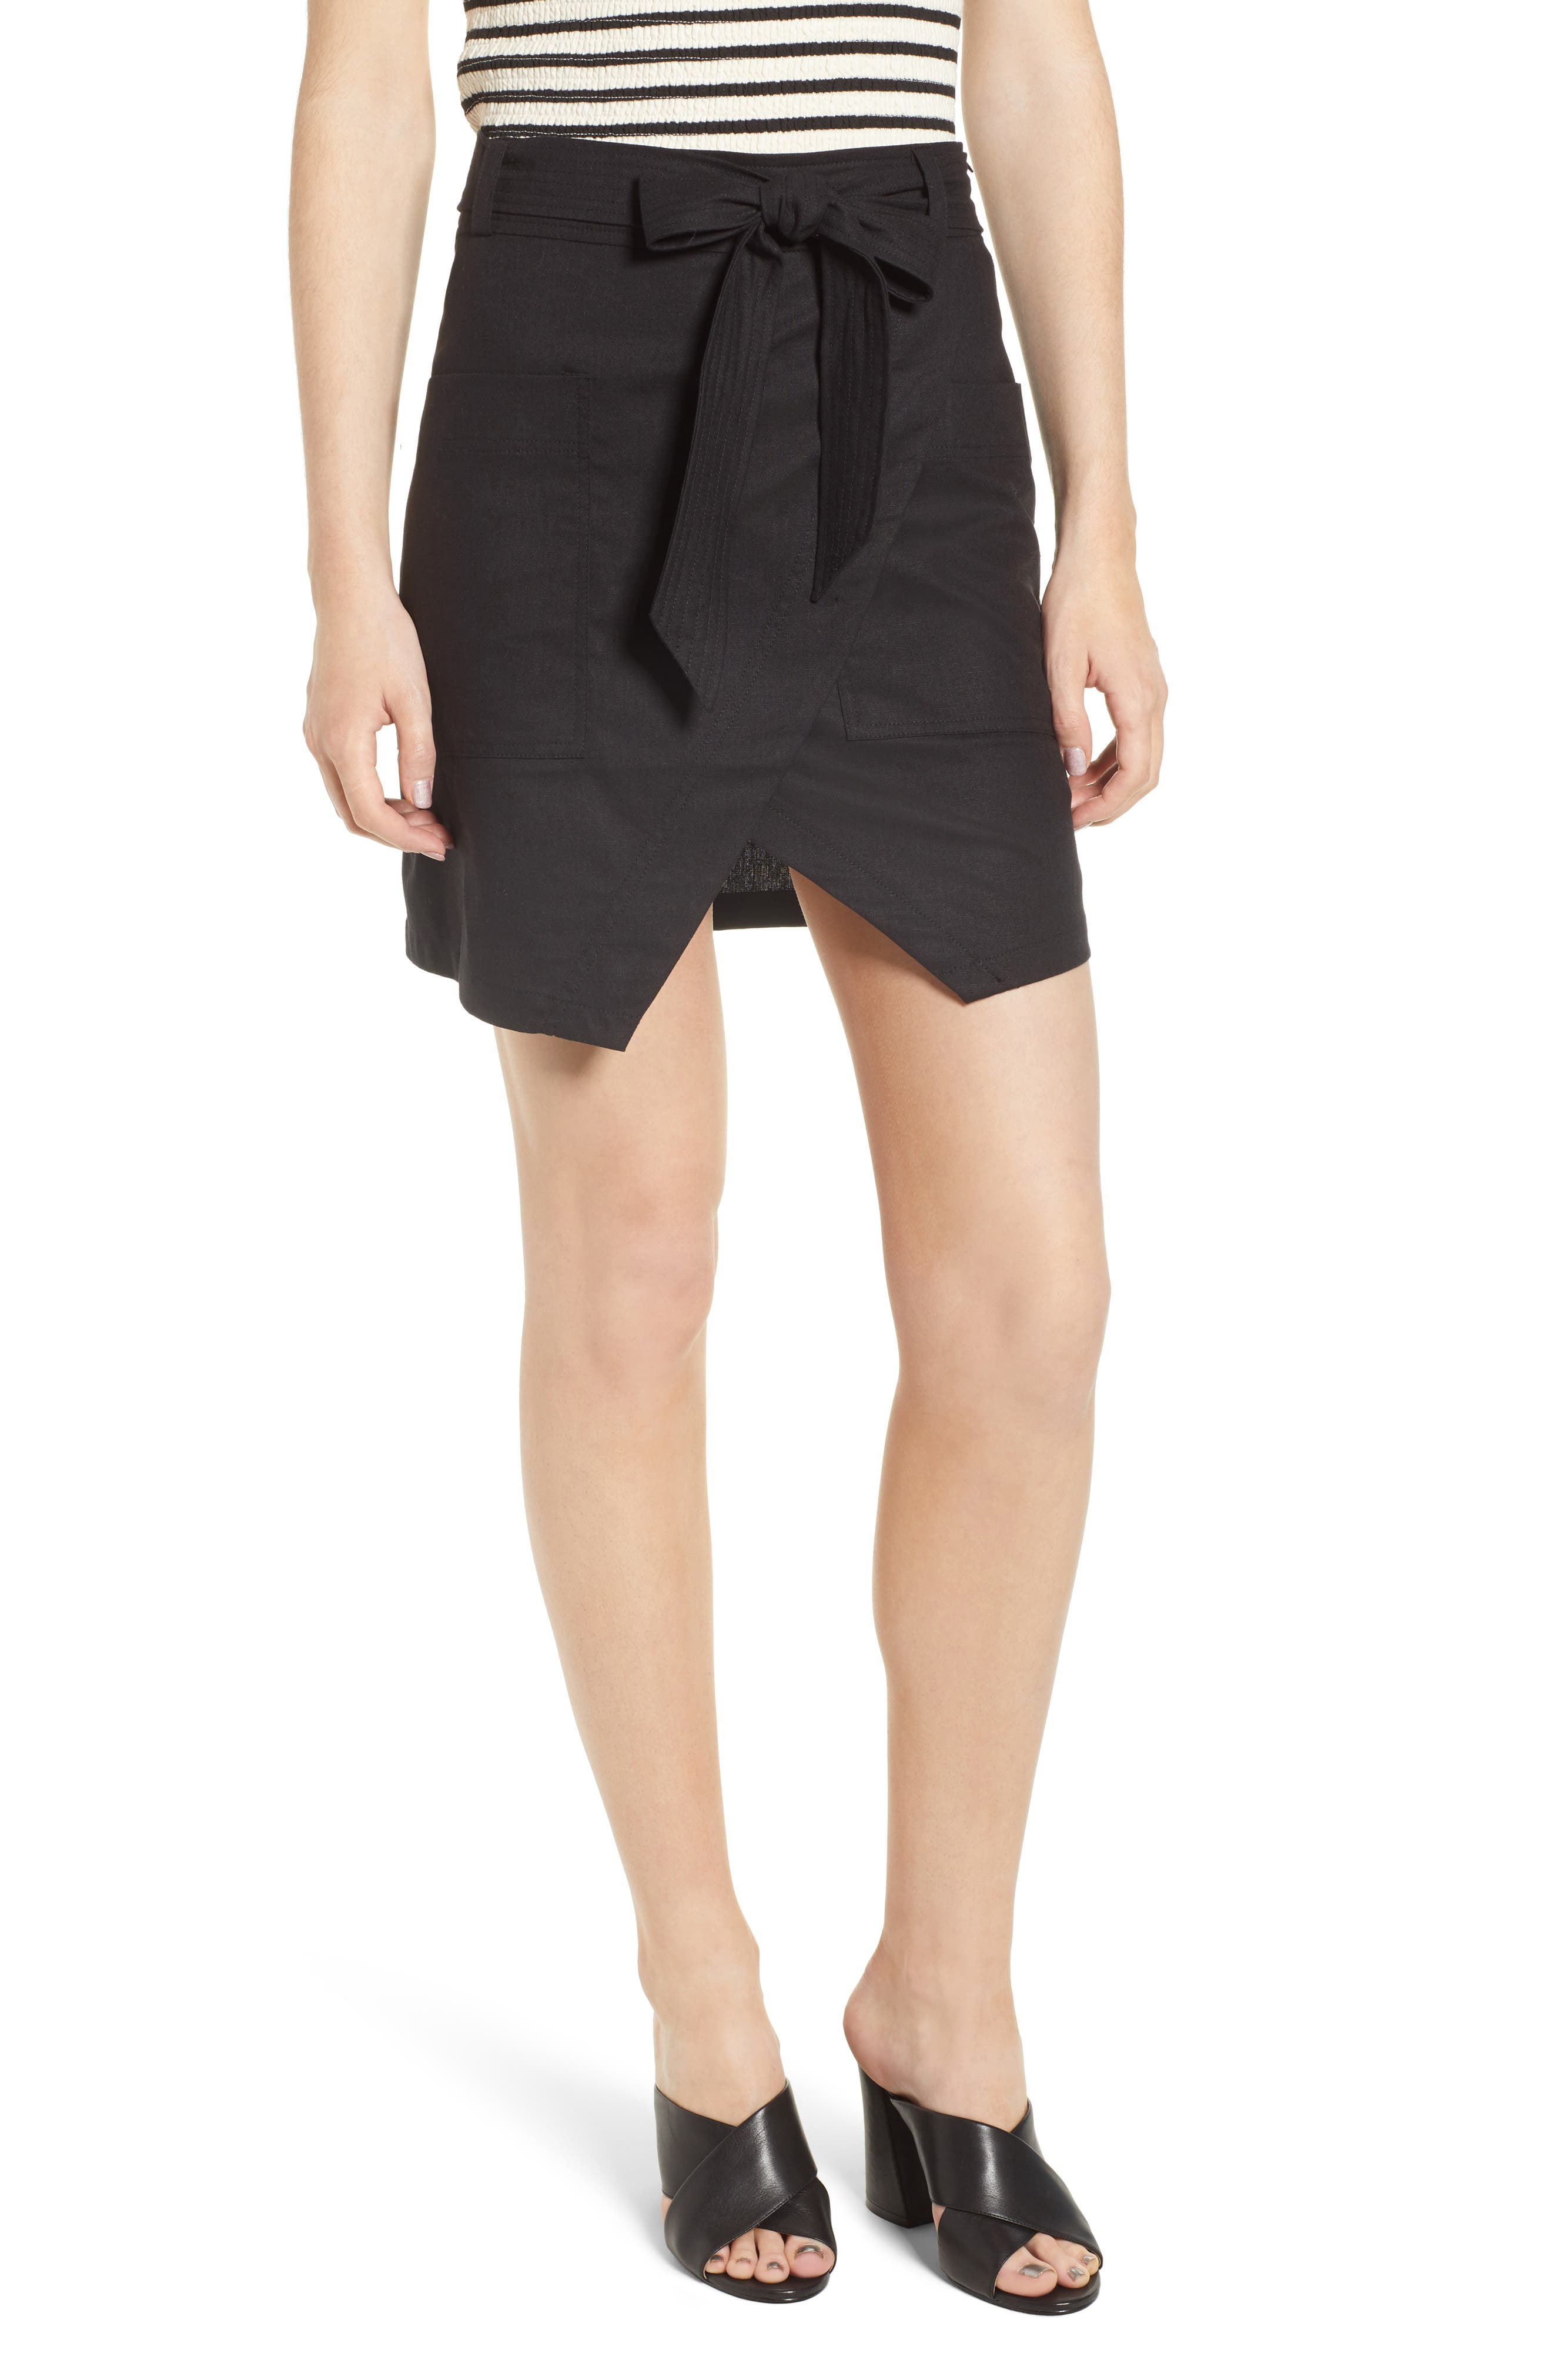 BISHOP + YOUNG Tie Front Wrap Style Skirt, Main, color, 001